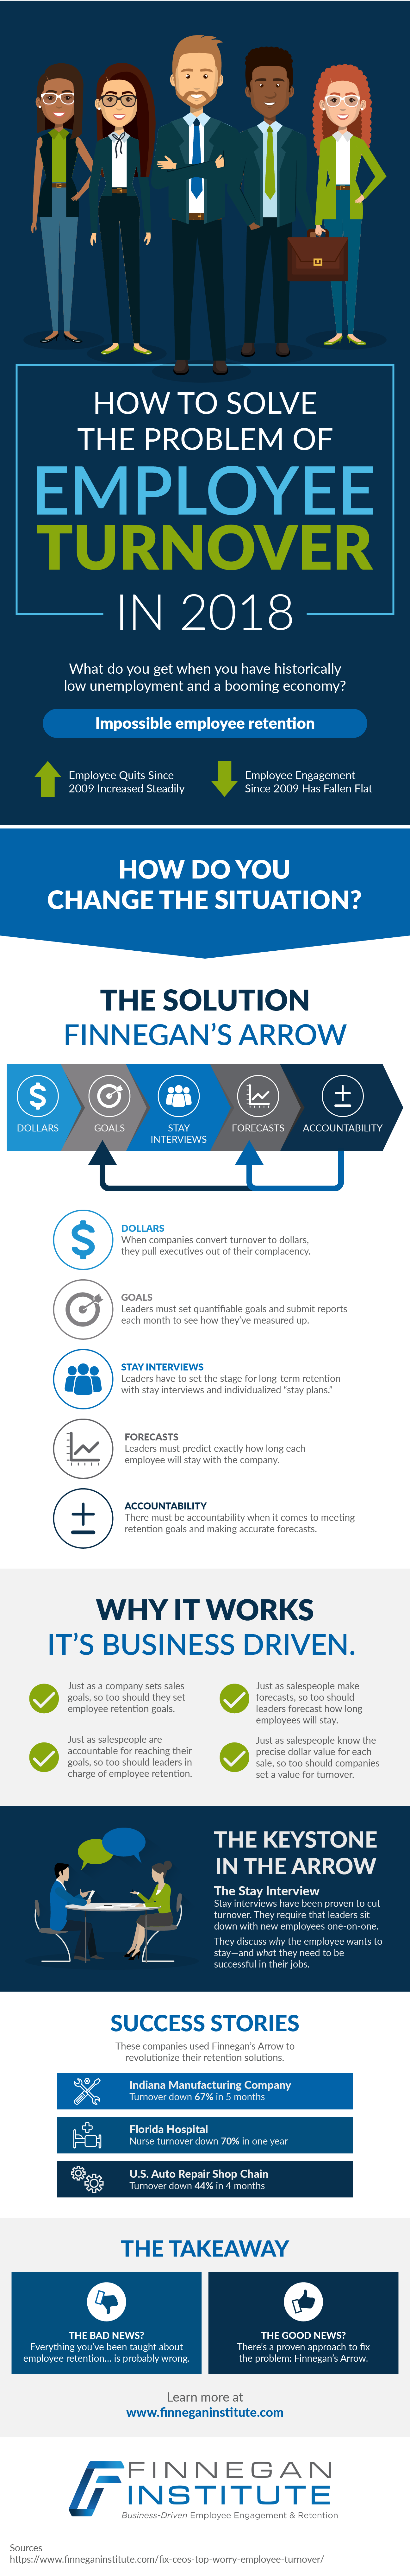 how to solve employee turnover in 2018 infographic